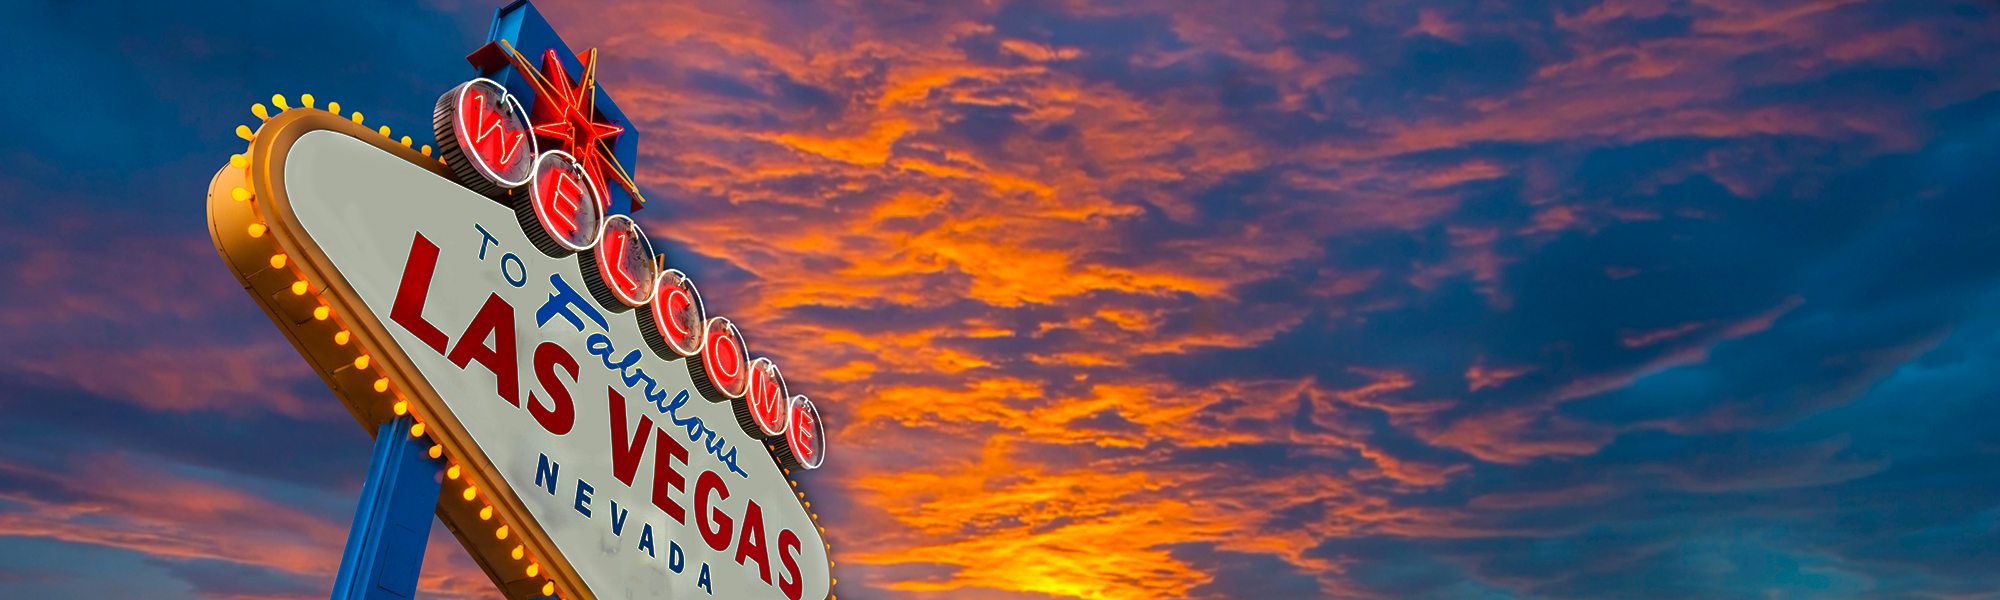 Las Vegas Welcome Sign at Sunset